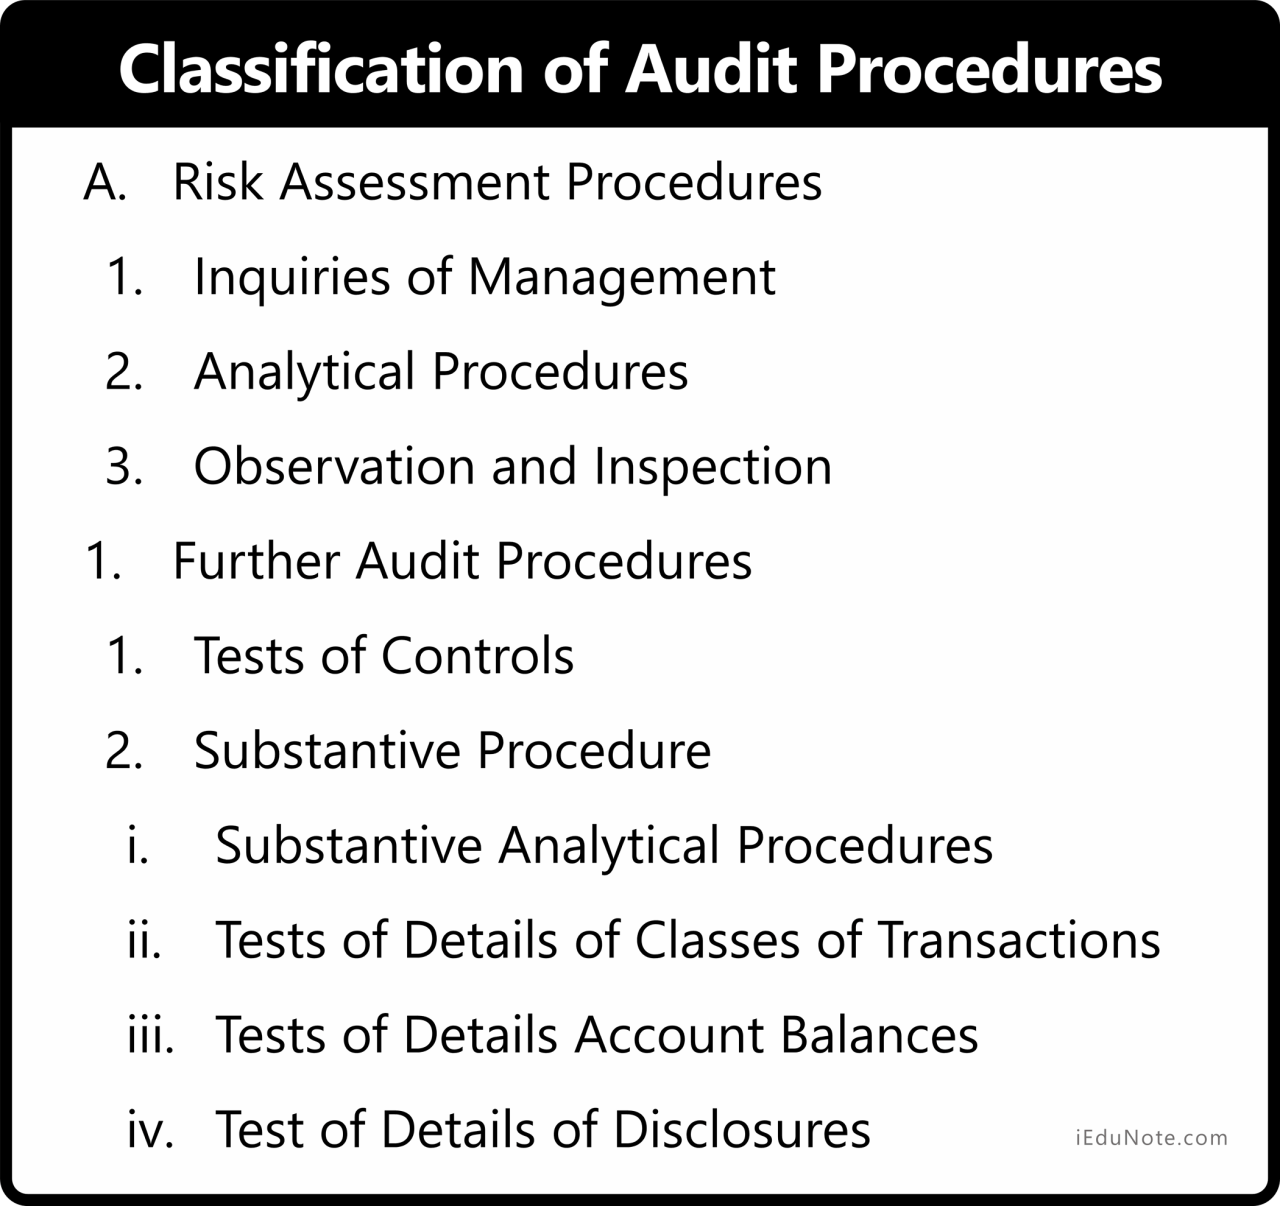 Classification of Audit Procedures